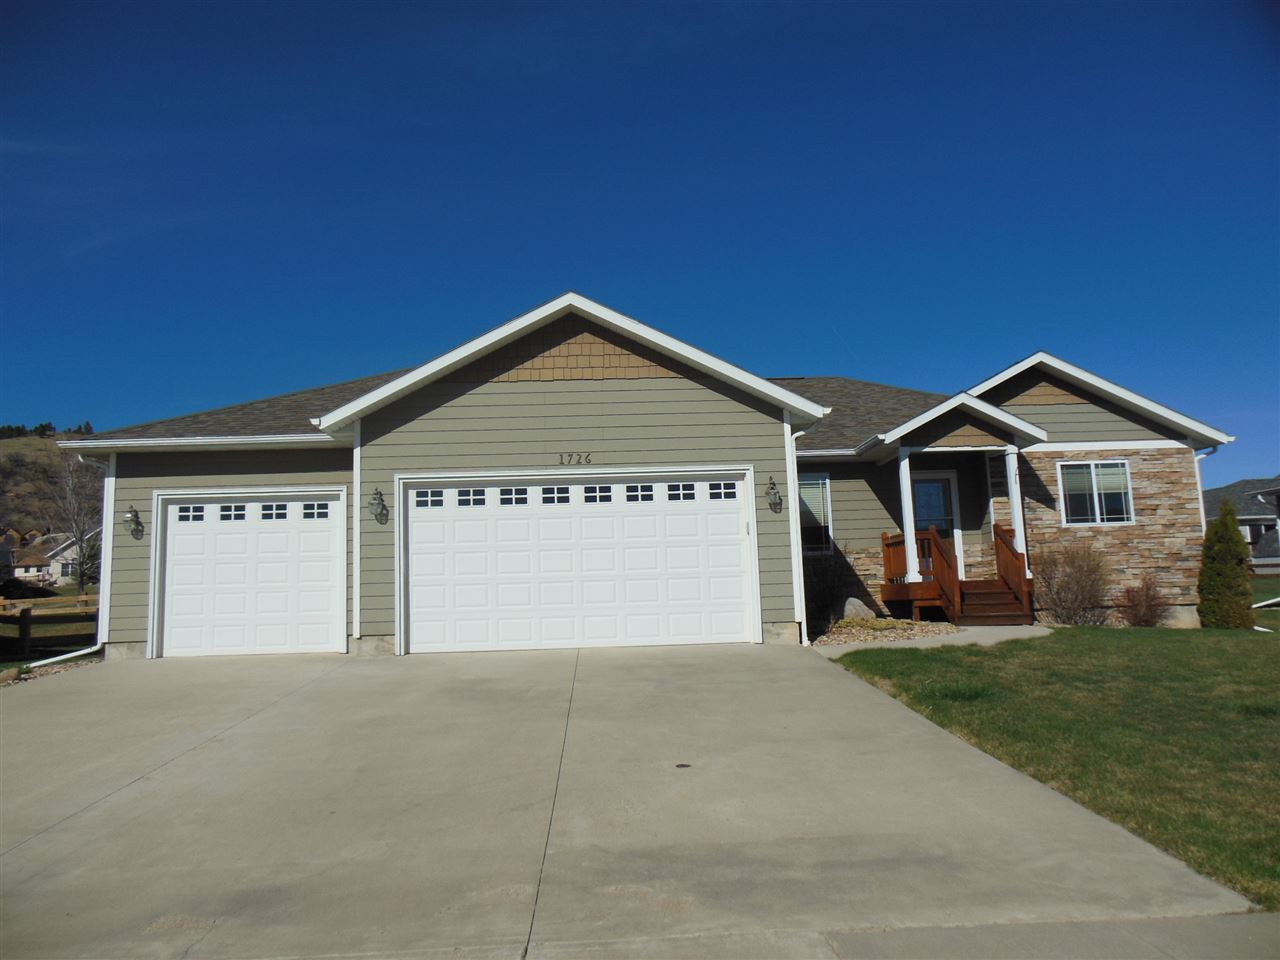 1726 Iron Horse Loop, Spearfish, SD 57783